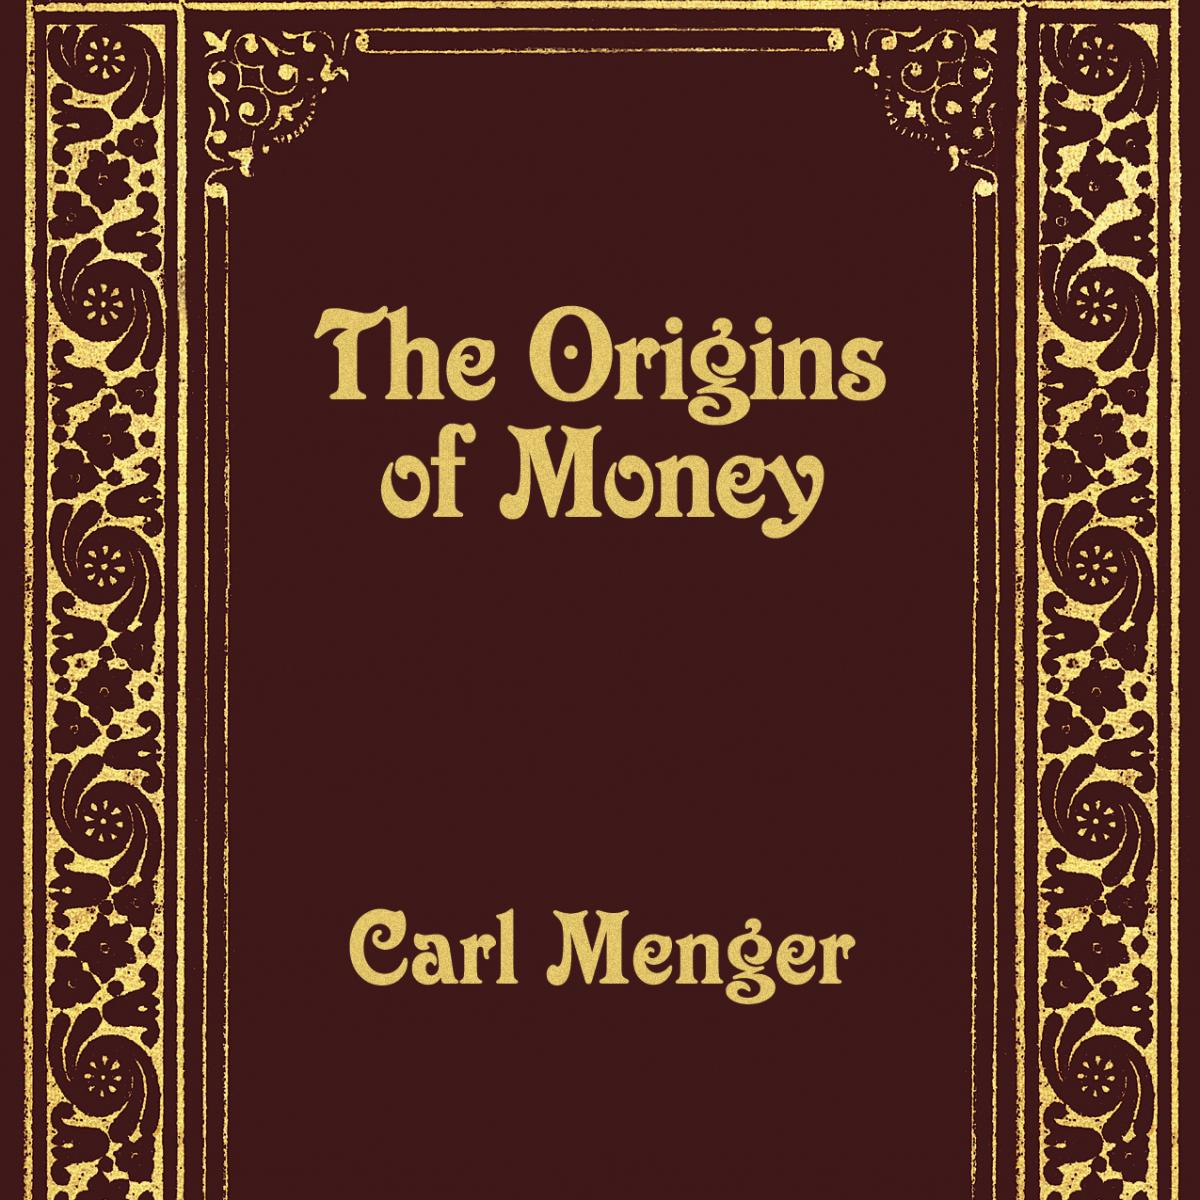 On the origins of money mises institute fandeluxe Image collections